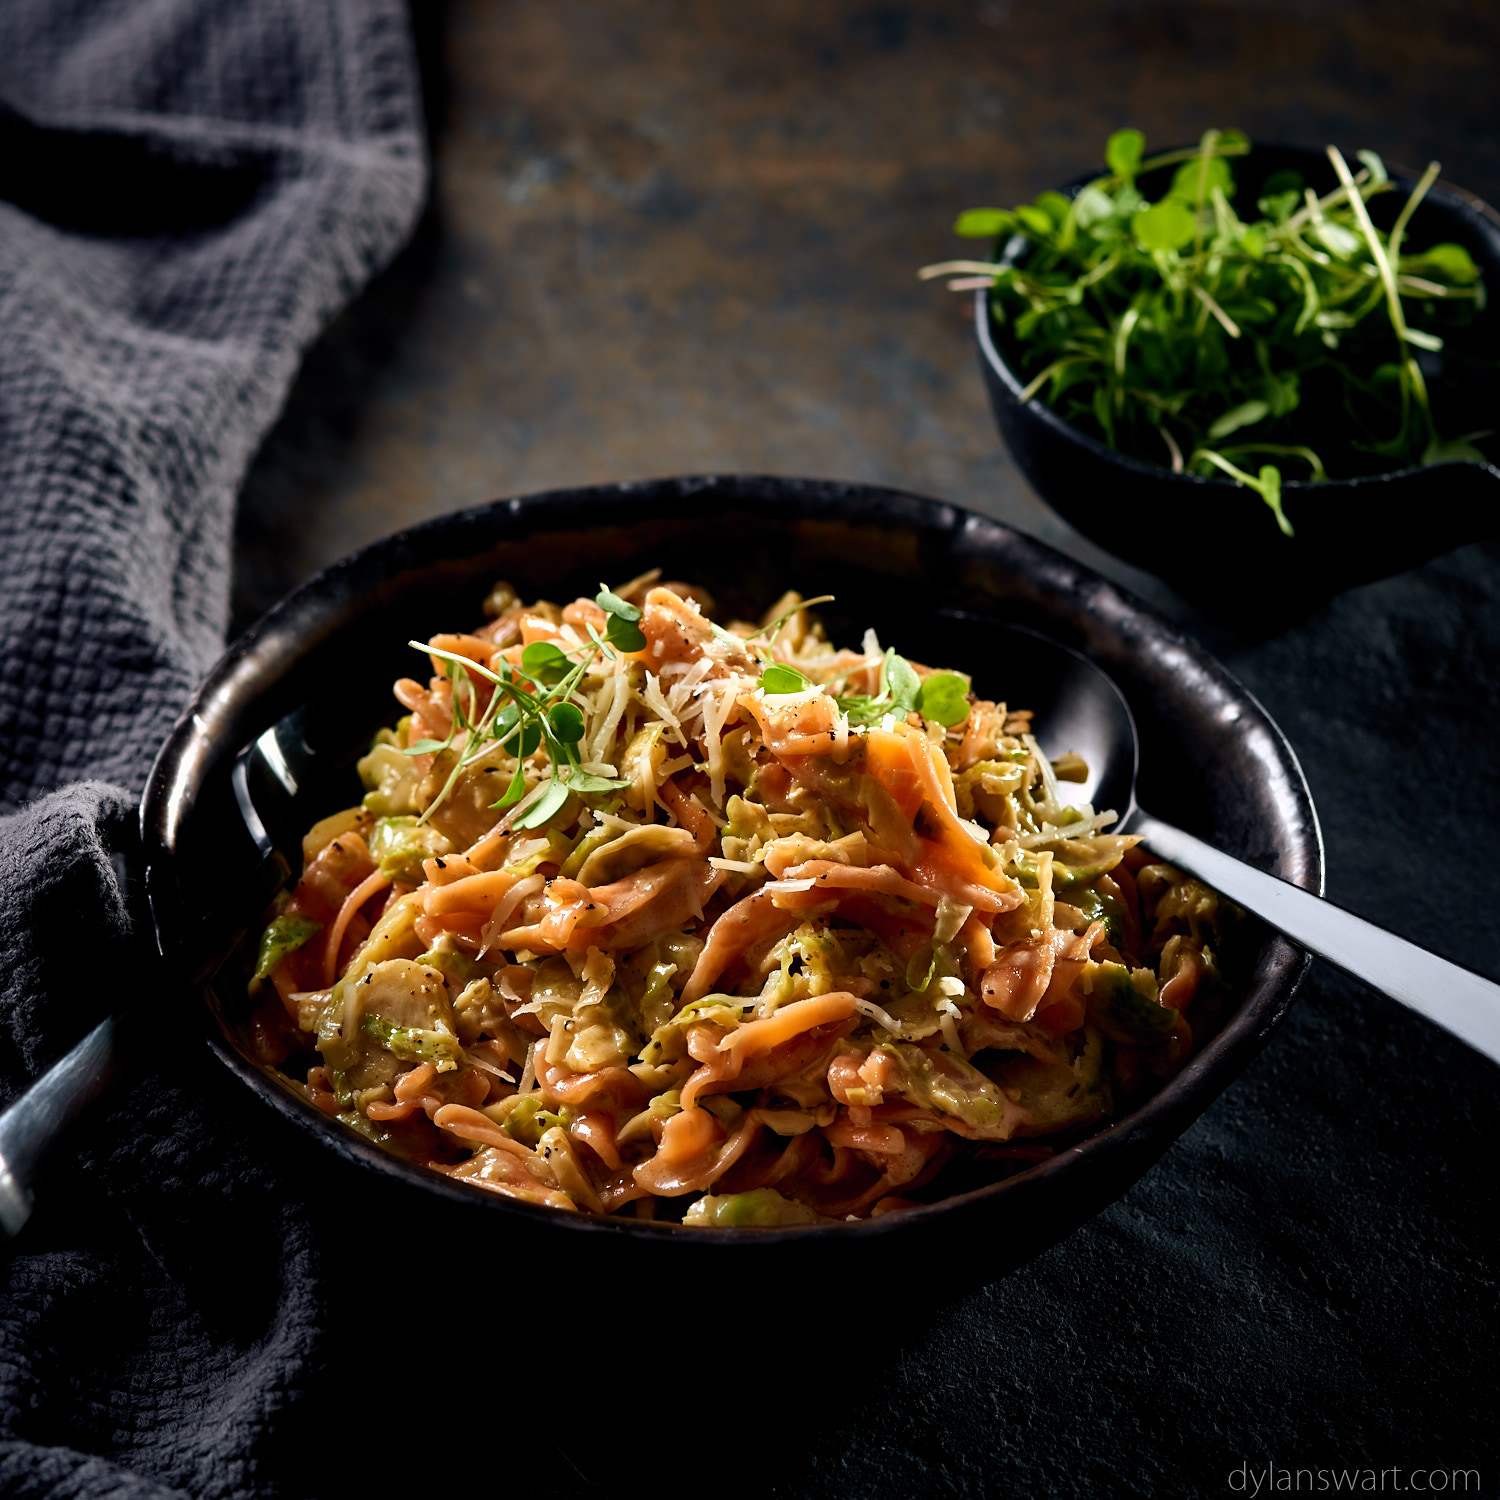 Lentil pasta with leeks and shredded brussels sprouts